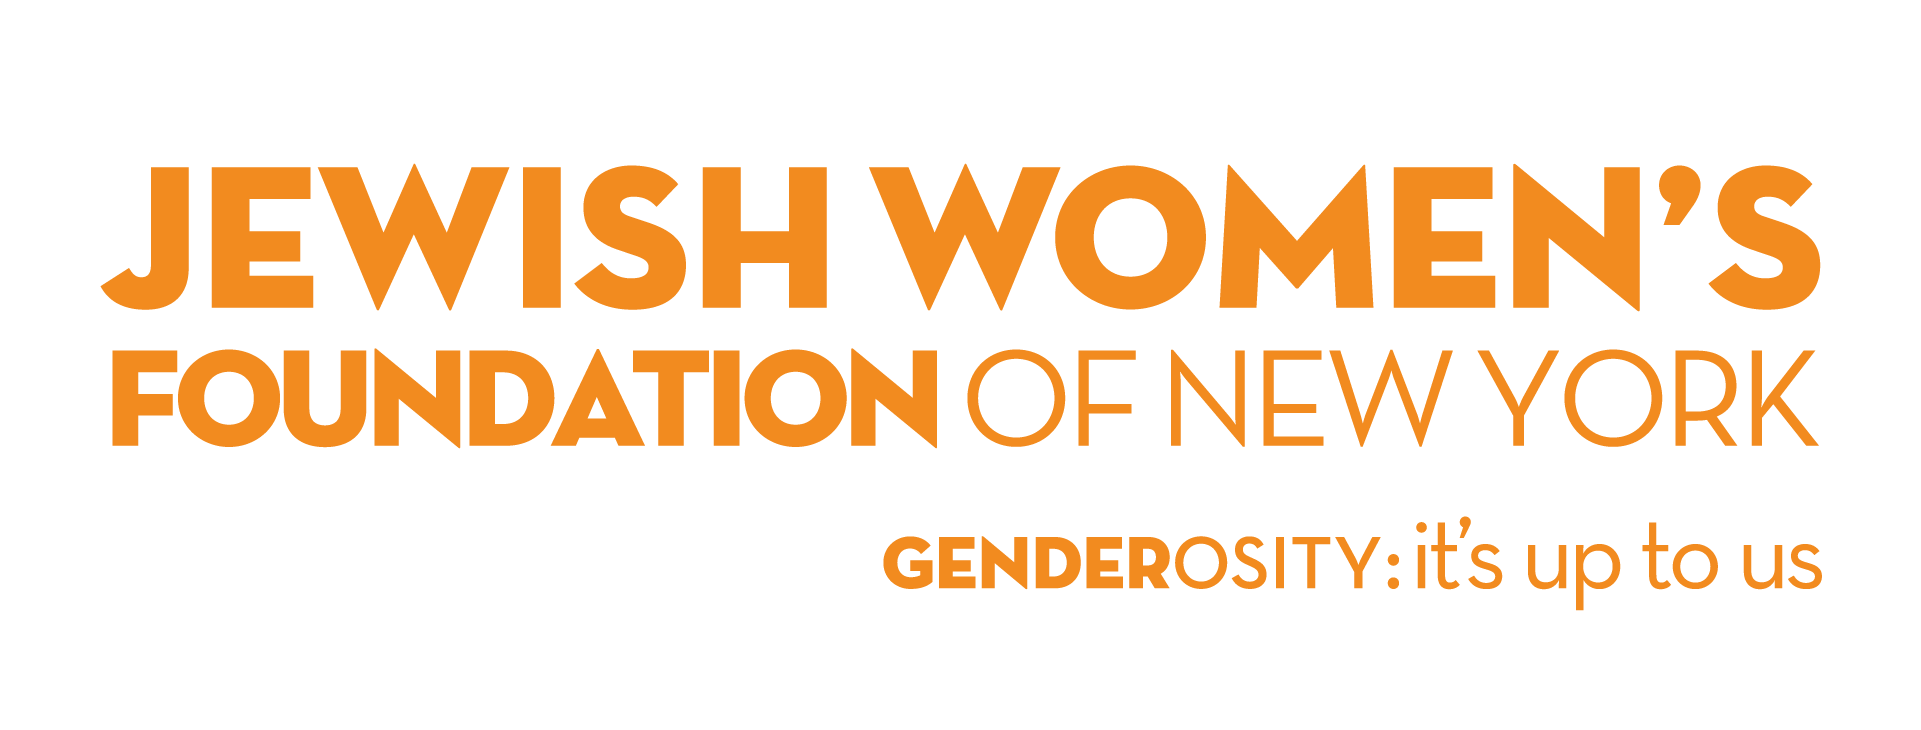 Jewish Womens Foundation of New York